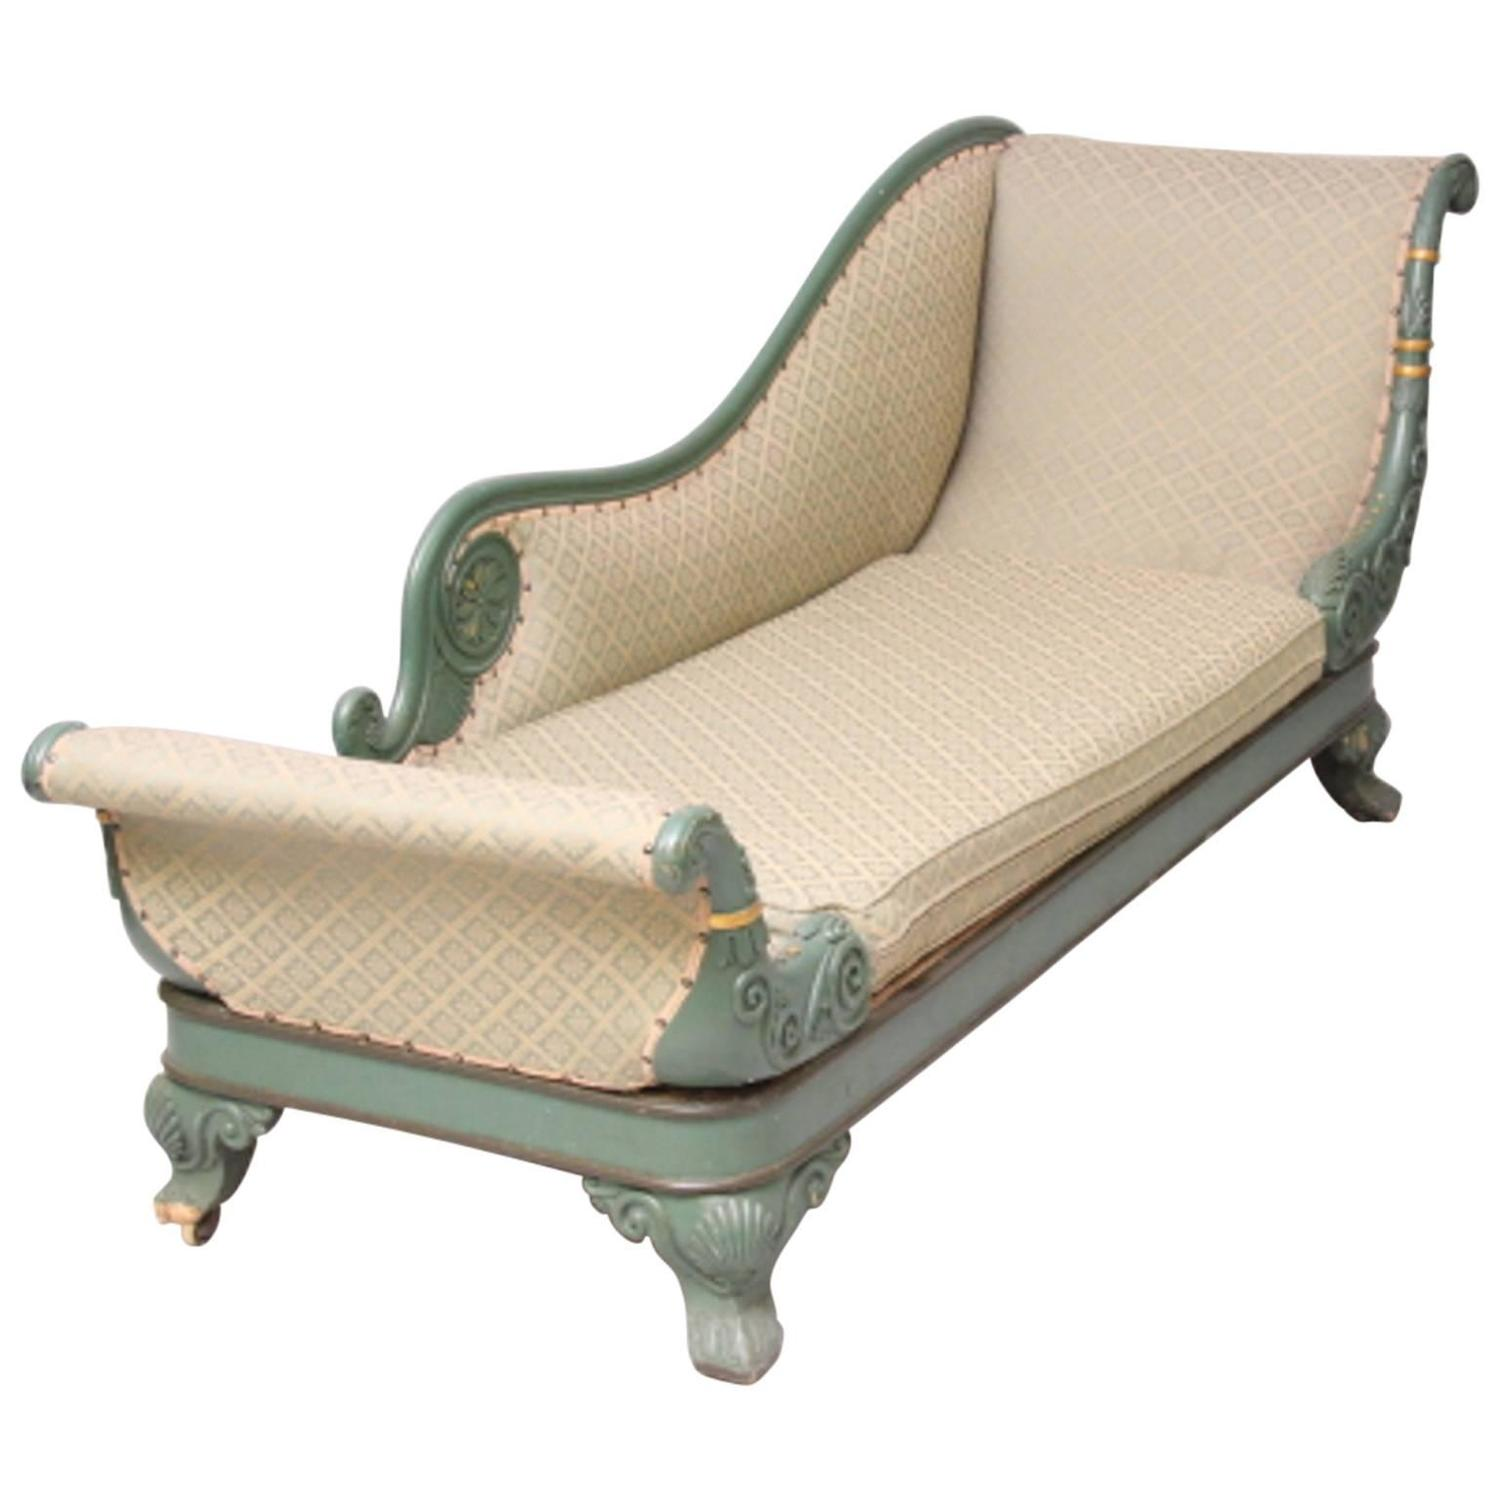 Antique 19th century painted chaise longue for sale at 1stdibs for Chaise longue antique